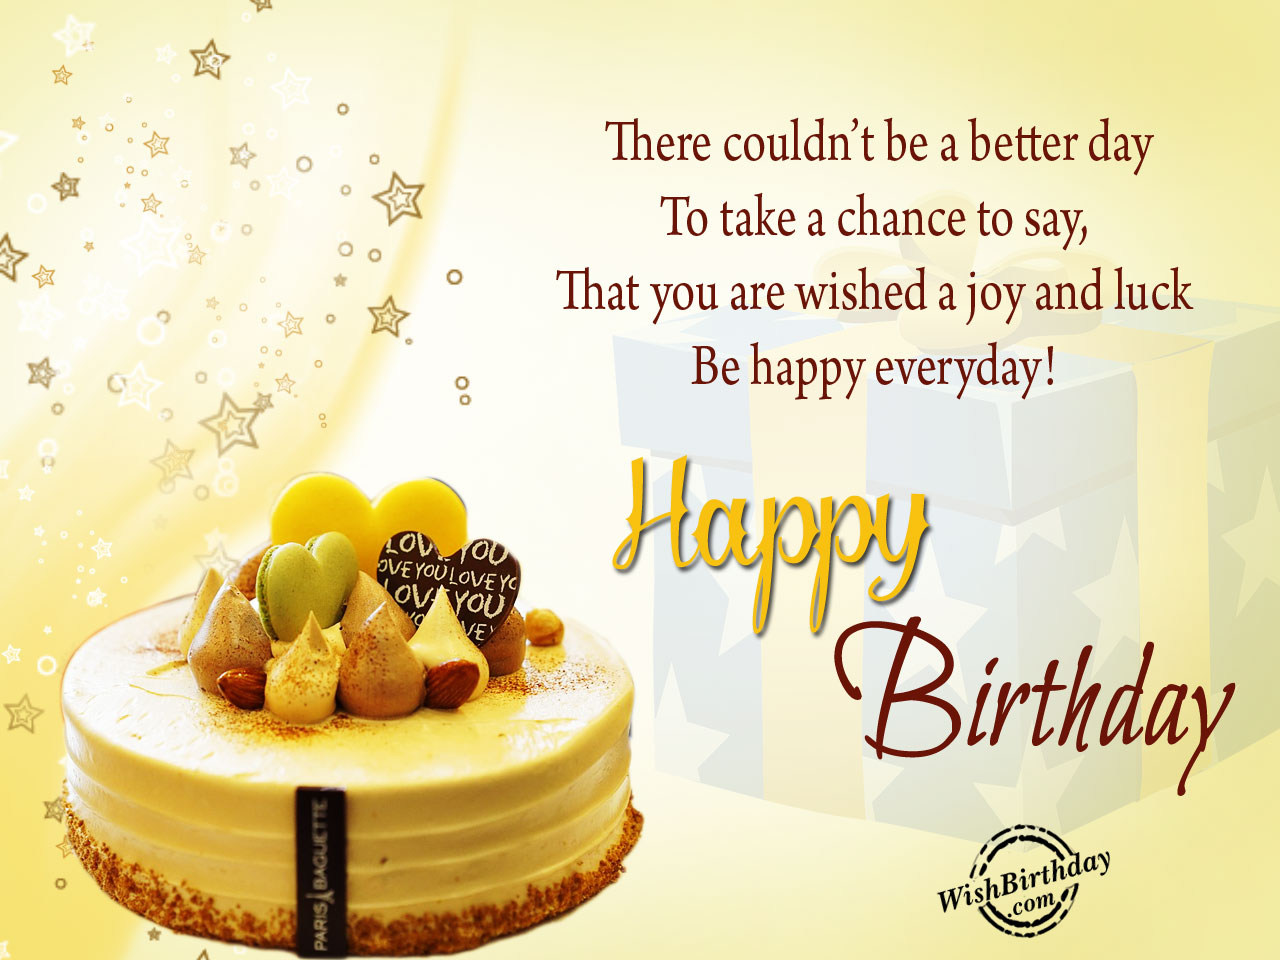 www birthday message com ; There-could-not-be-a-better-day